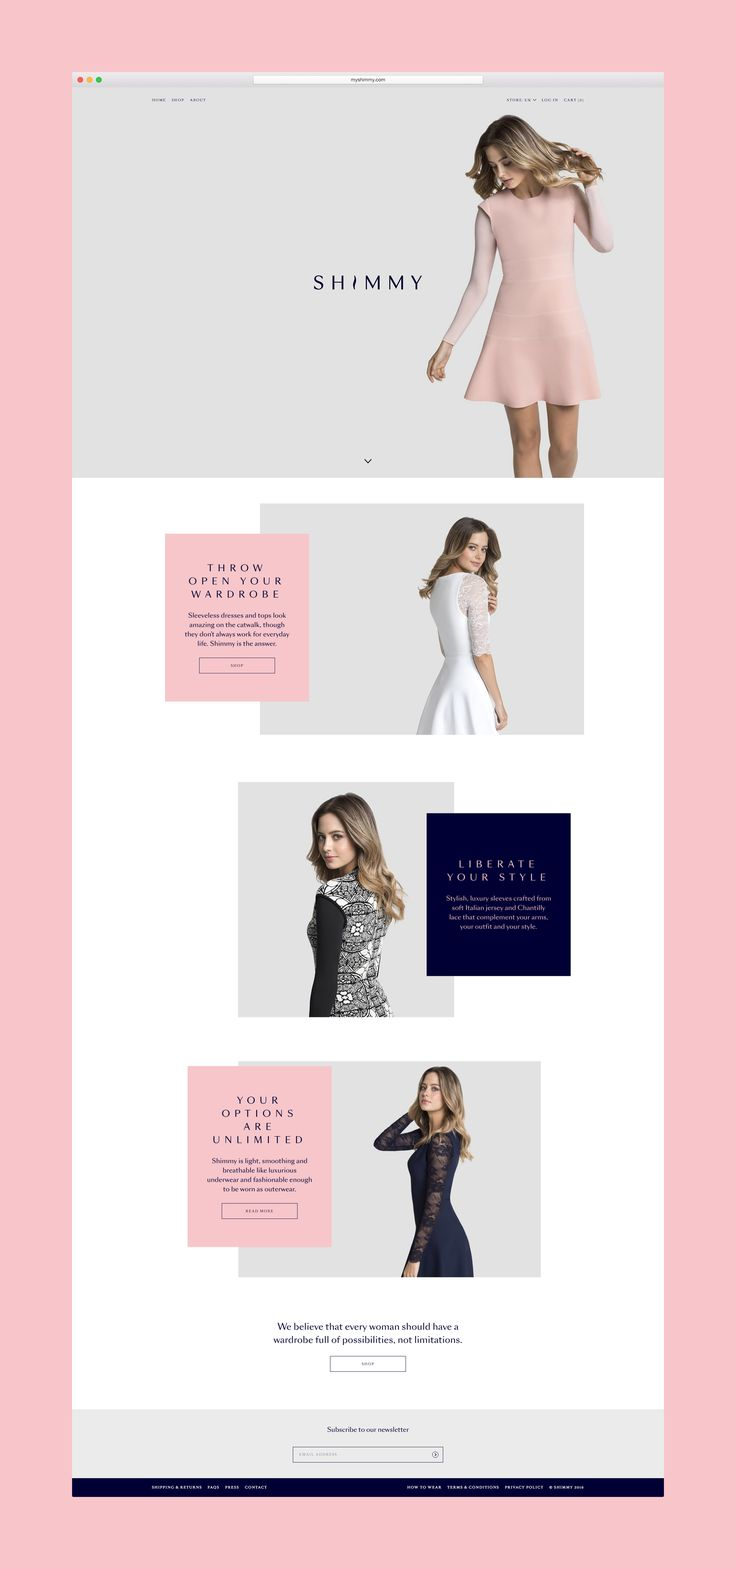 Branding for a revolutionary new garment, designed to liberate every woman's sense of style. The design studio Ragged Edge used a powerful ideology to create a brand that would connect with women of all ages. The logo, with its shimmying 'I', is elegant yet playful. Loose, expressive layouts and plenty of negative space help the brand to convey …